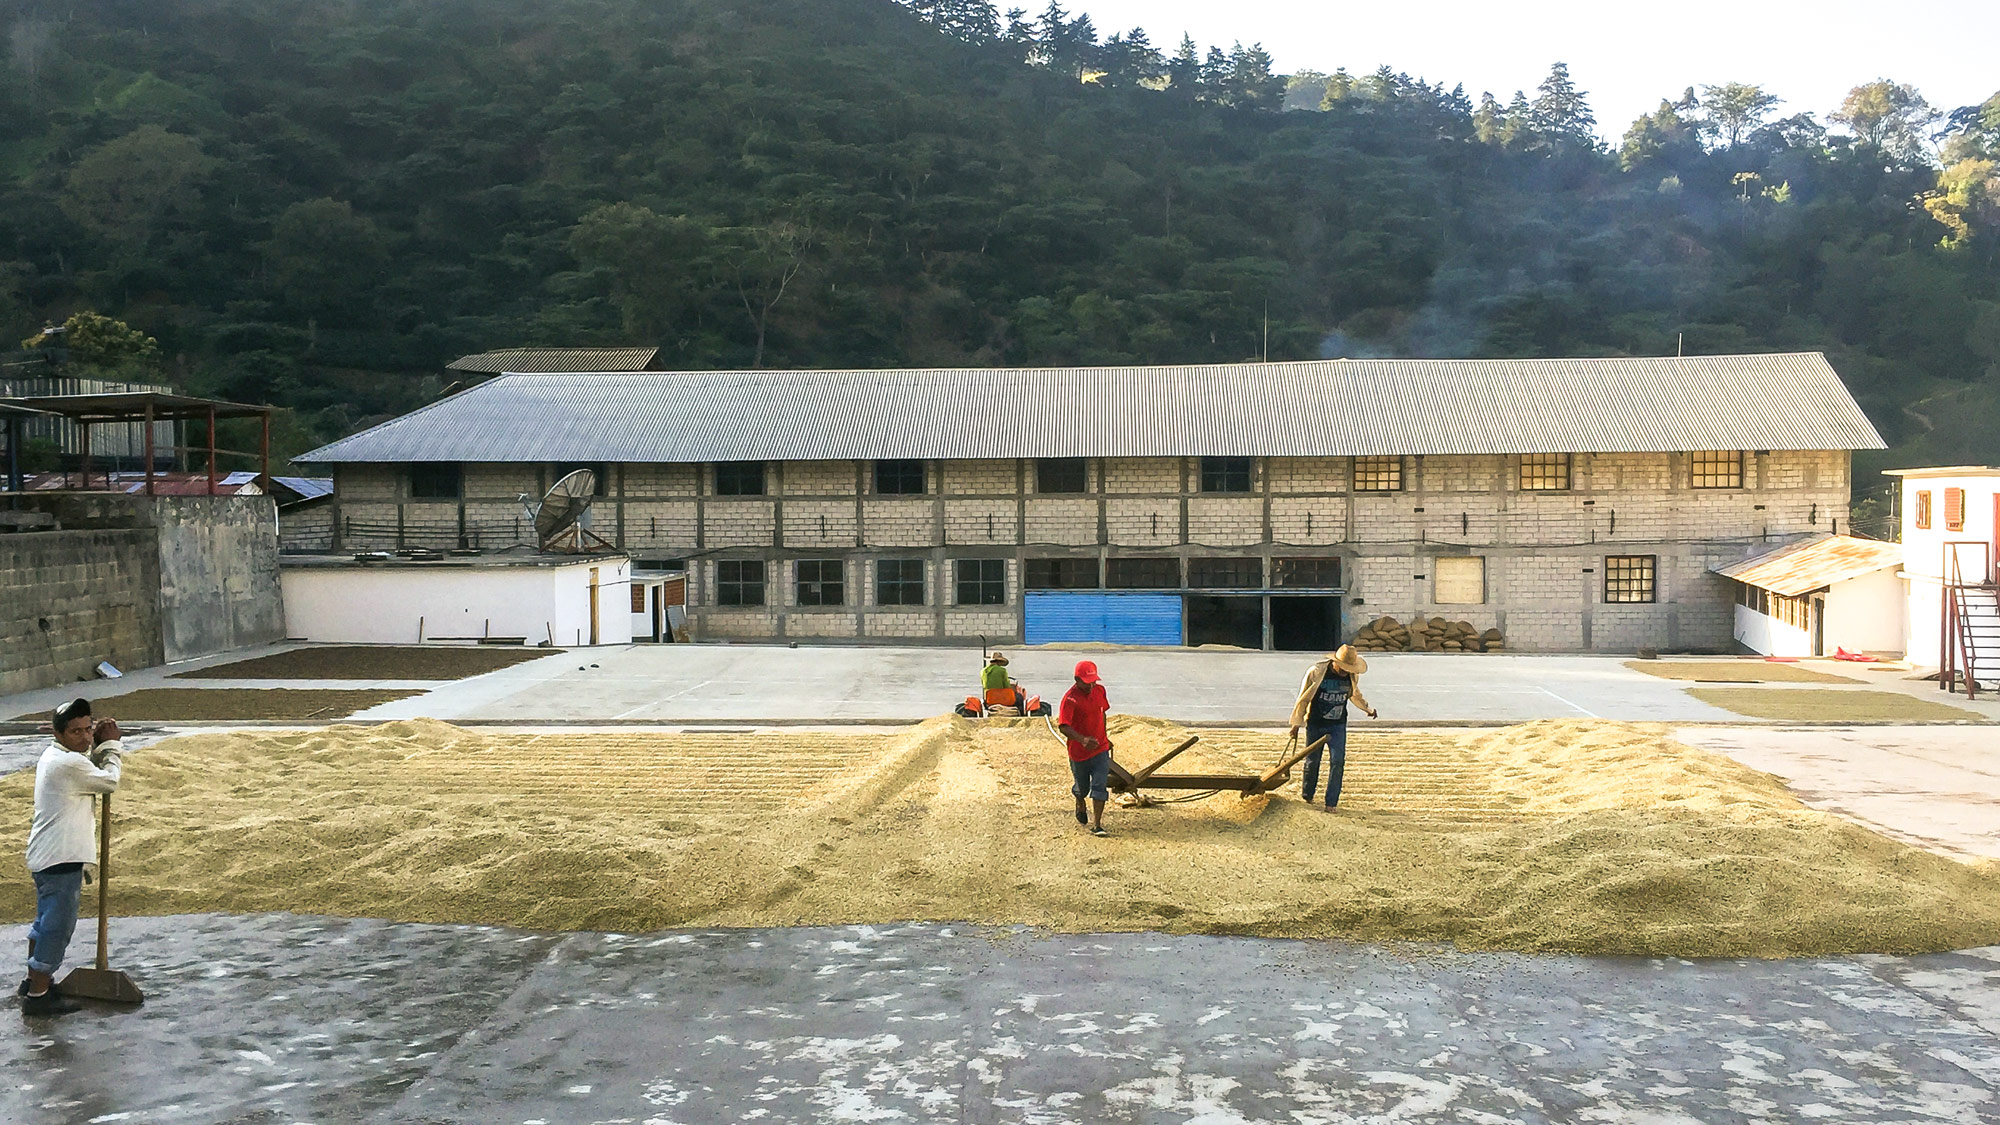 Workers at Finca Custapec in Chiapas, Mexico prep recently harvested beans for drying. Custapec is a fourth-generation-owned farm (the Pohlenz Family) that provides healthcare and schooling for permanent workers' families.